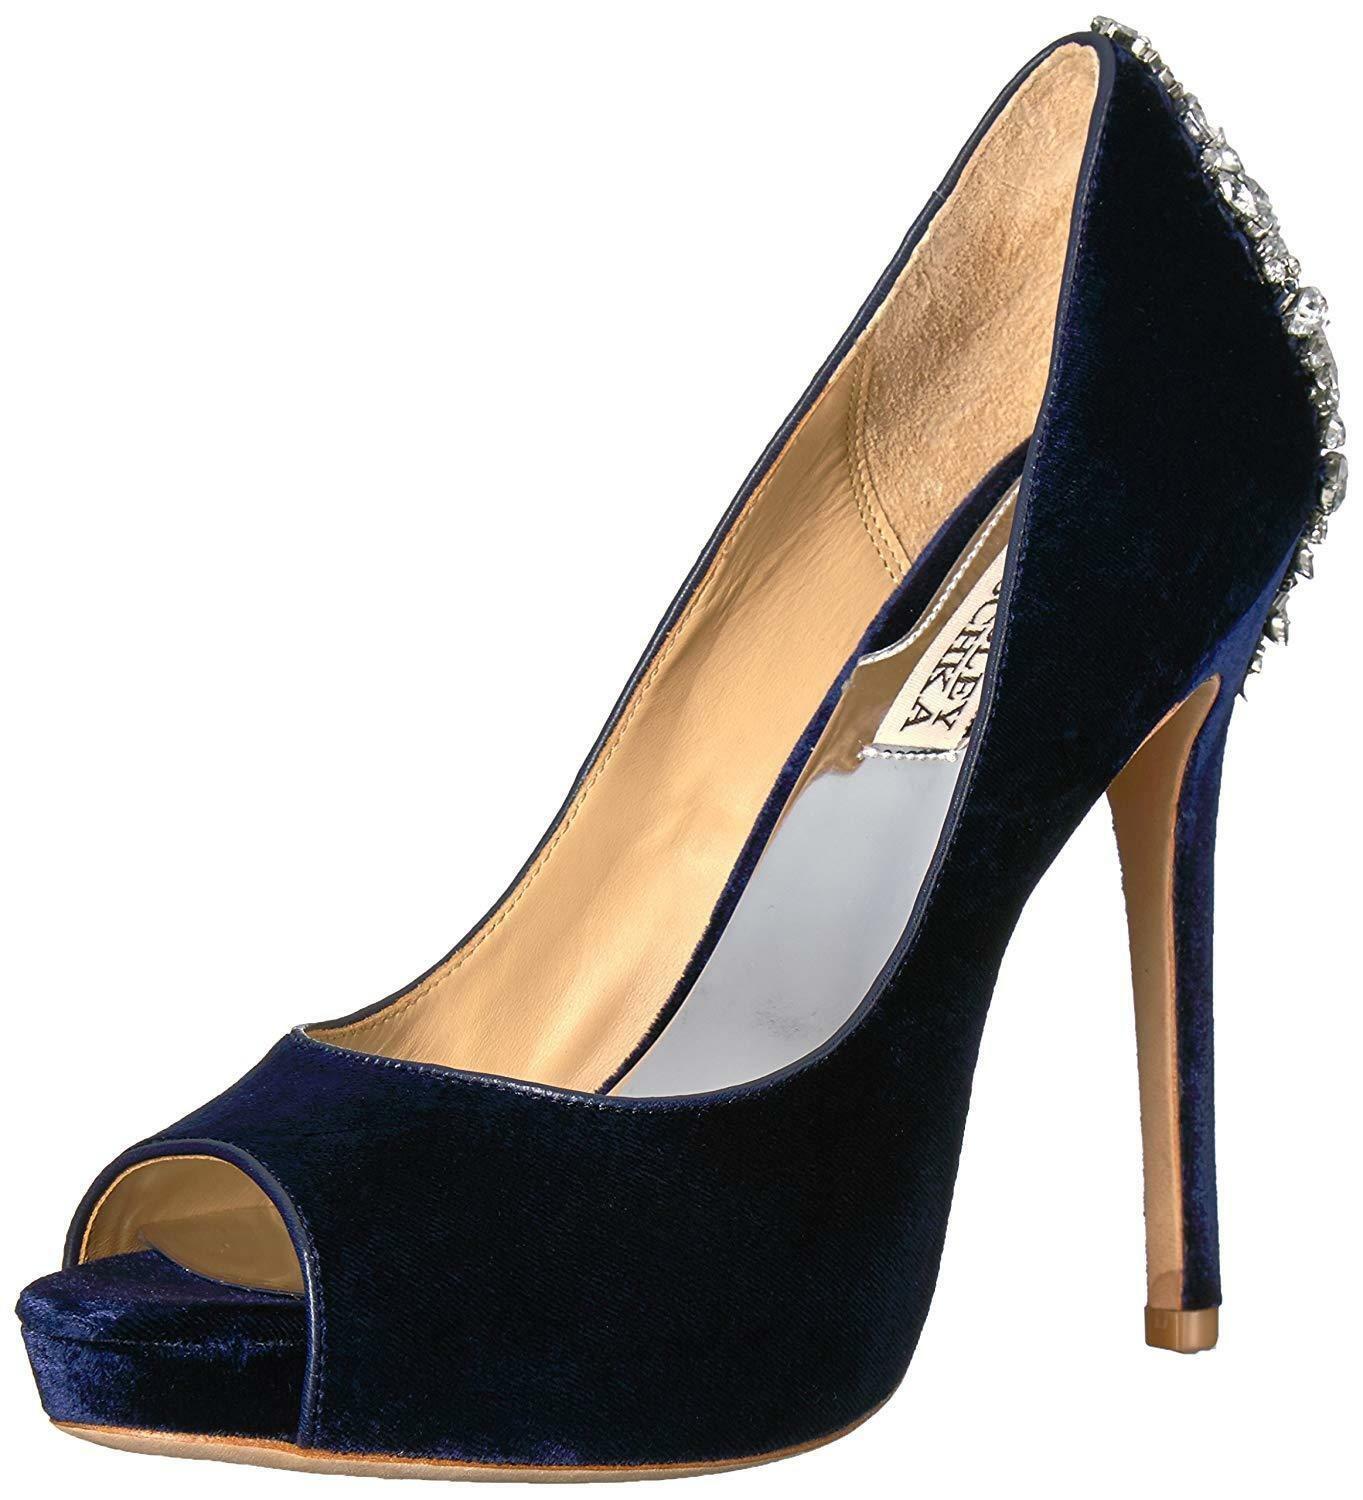 Badgley Mischka Womens Kiara Pump- Pick SZ color.